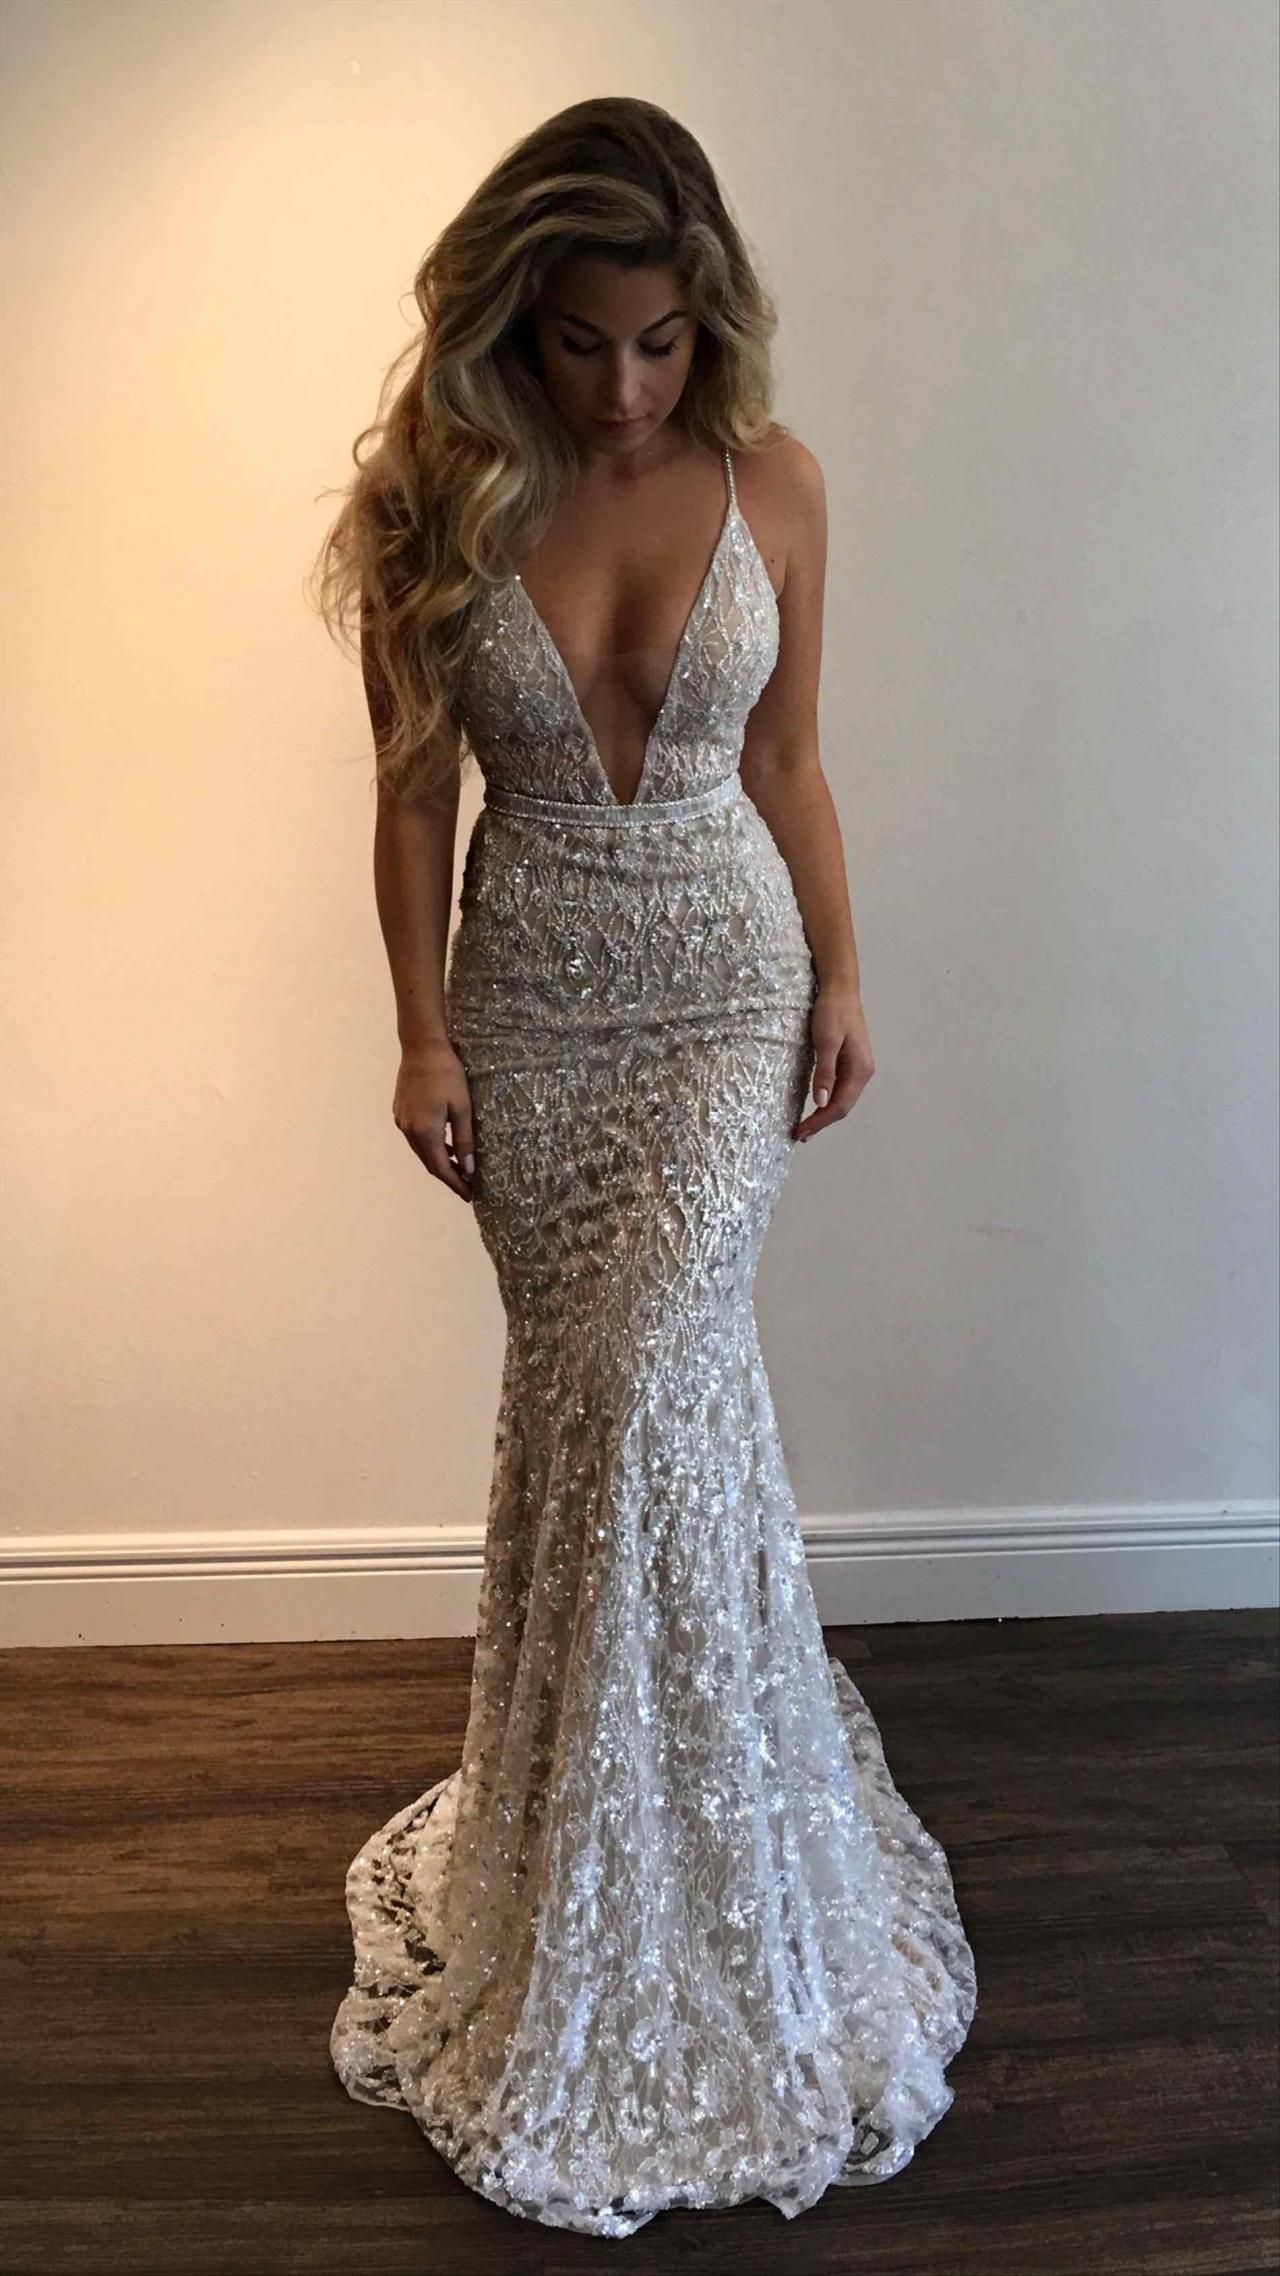 59259c72bfe Unique Shining Beaded Prom Dress